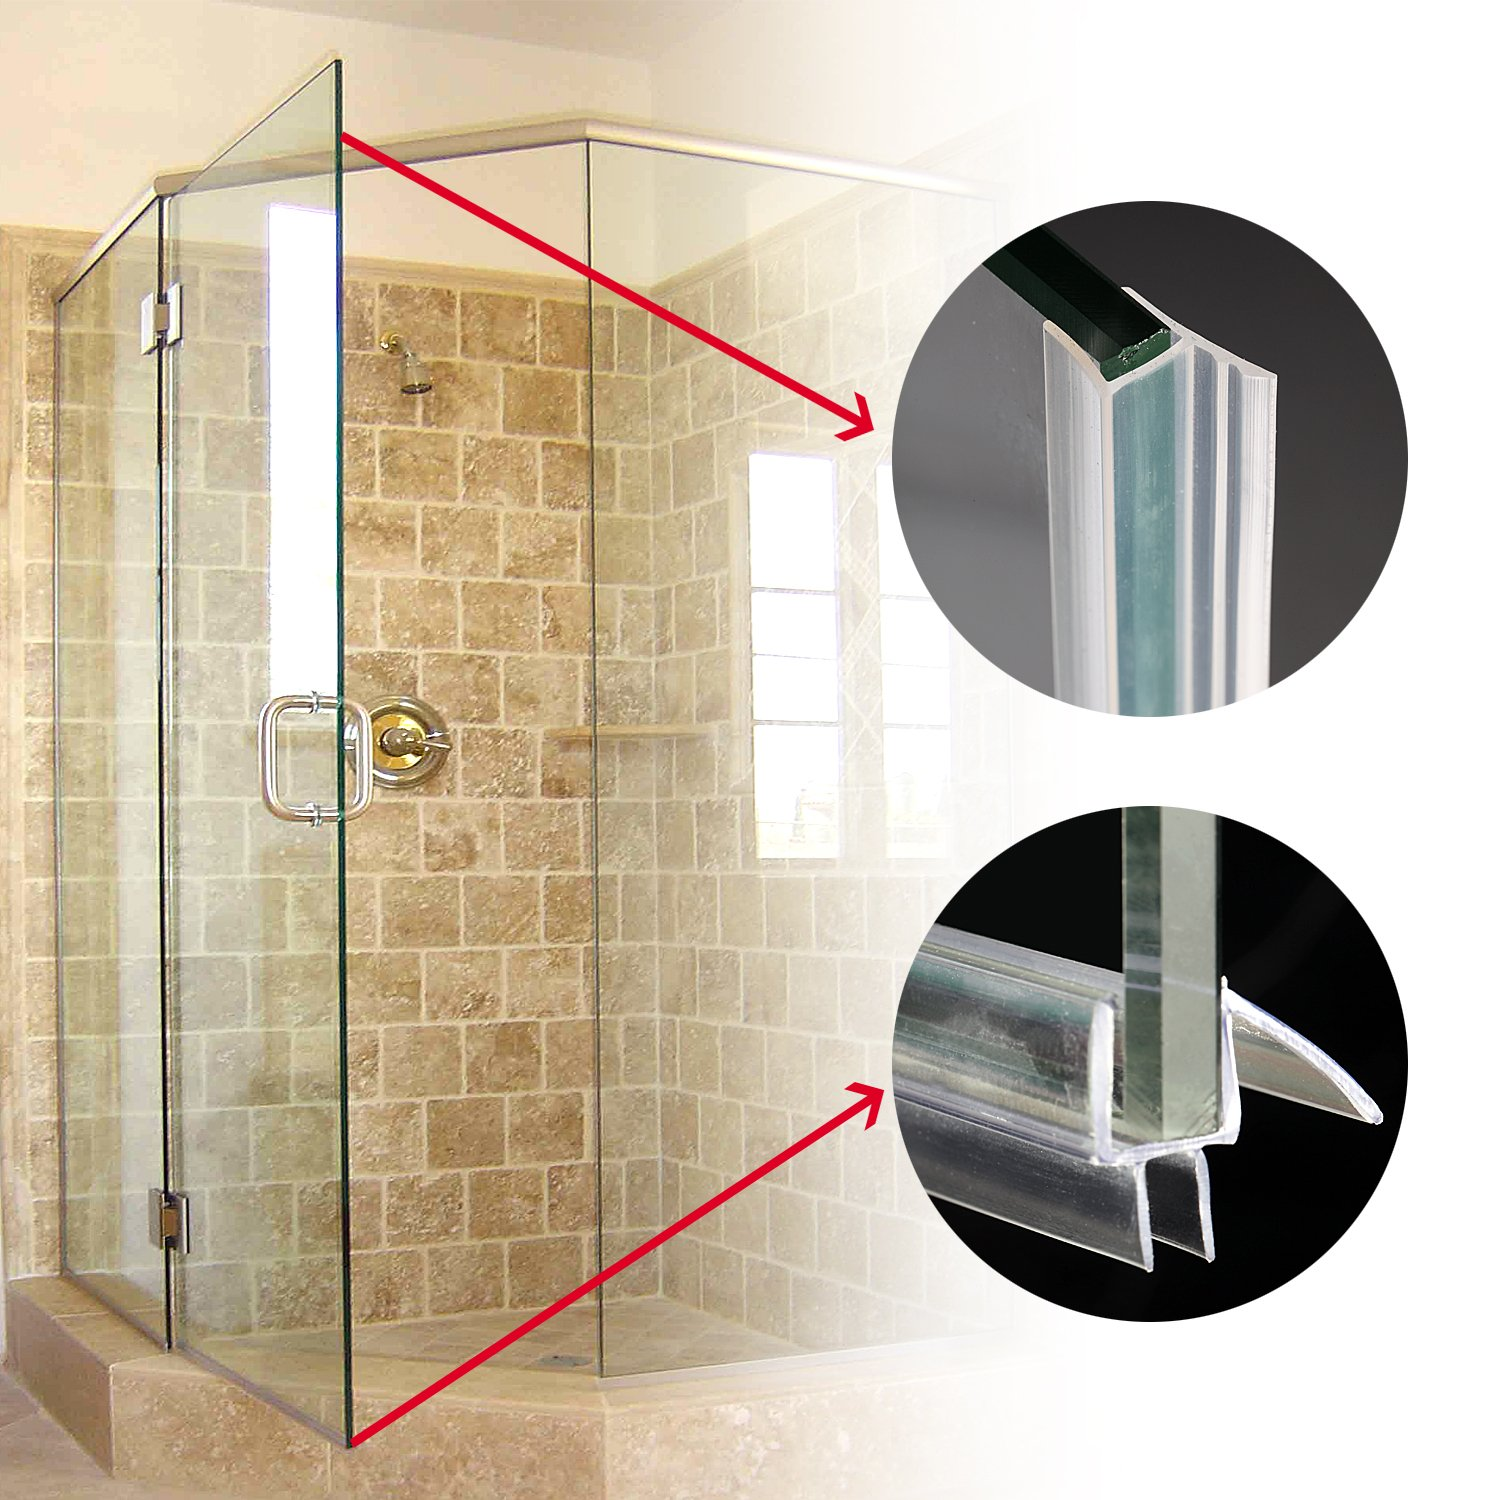 Shower Door Sweep, Frameless Glass Shower Weather Stripping for Door Bottom-36 Inch Length M-3/8 inch + 72 Inch Length H-3/8 inch (3/8 inch(10mm), M+h-Type) by MAGZO (Image #5)